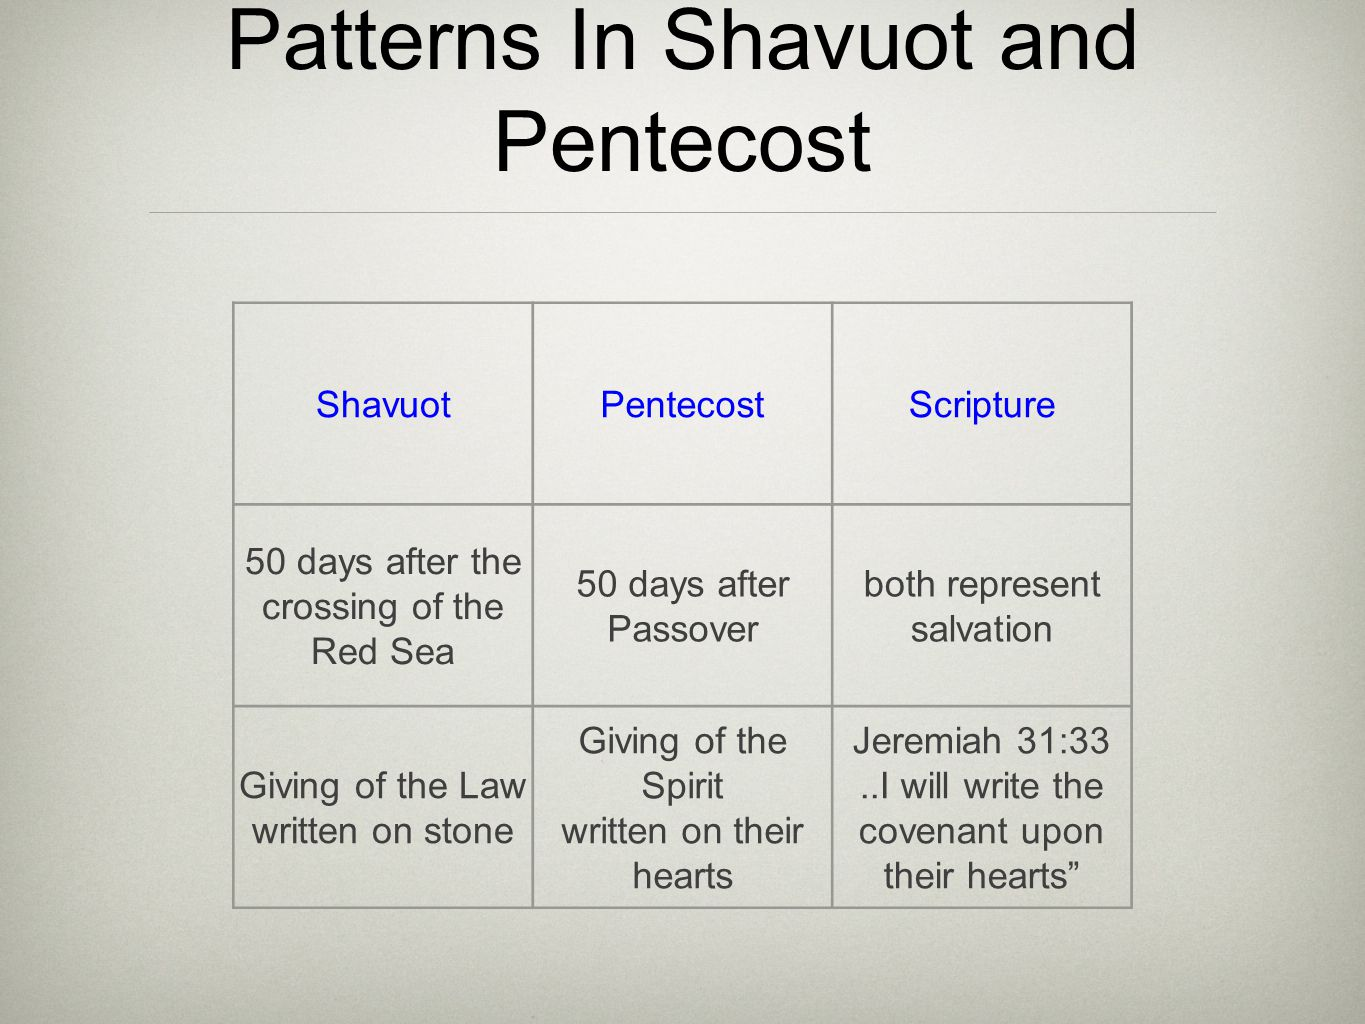 Patterns In Shavuot and Pentecost ShavuotPentecostScripture 50 days after the crossing of the Red Sea 50 days after Passover both represent salvation Giving of the Law written on stone Giving of the Spirit written on their hearts Jeremiah 31:33..I will write the covenant upon their hearts